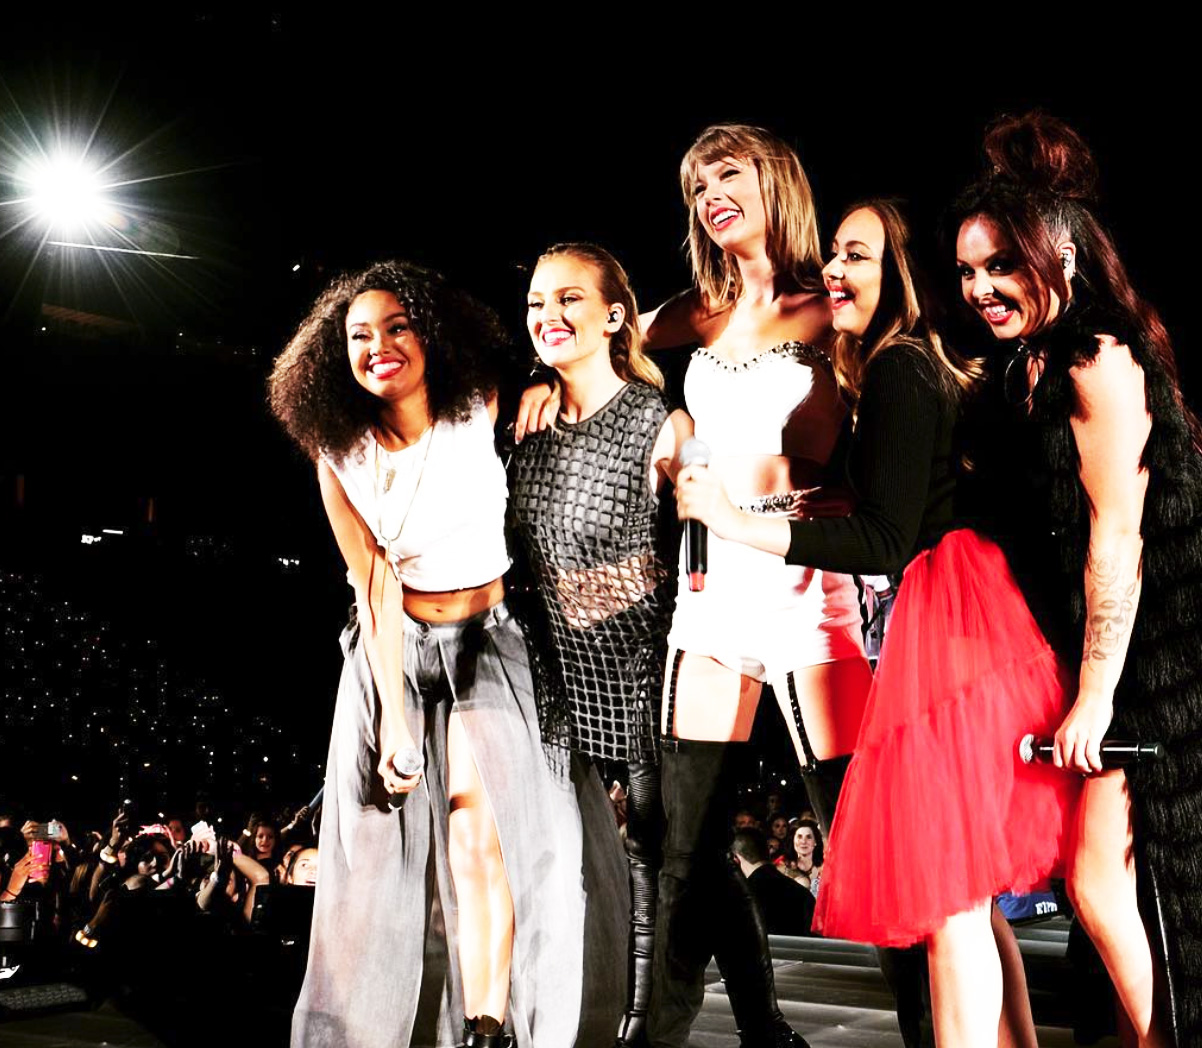 Taylor Swift & Little Mix girls